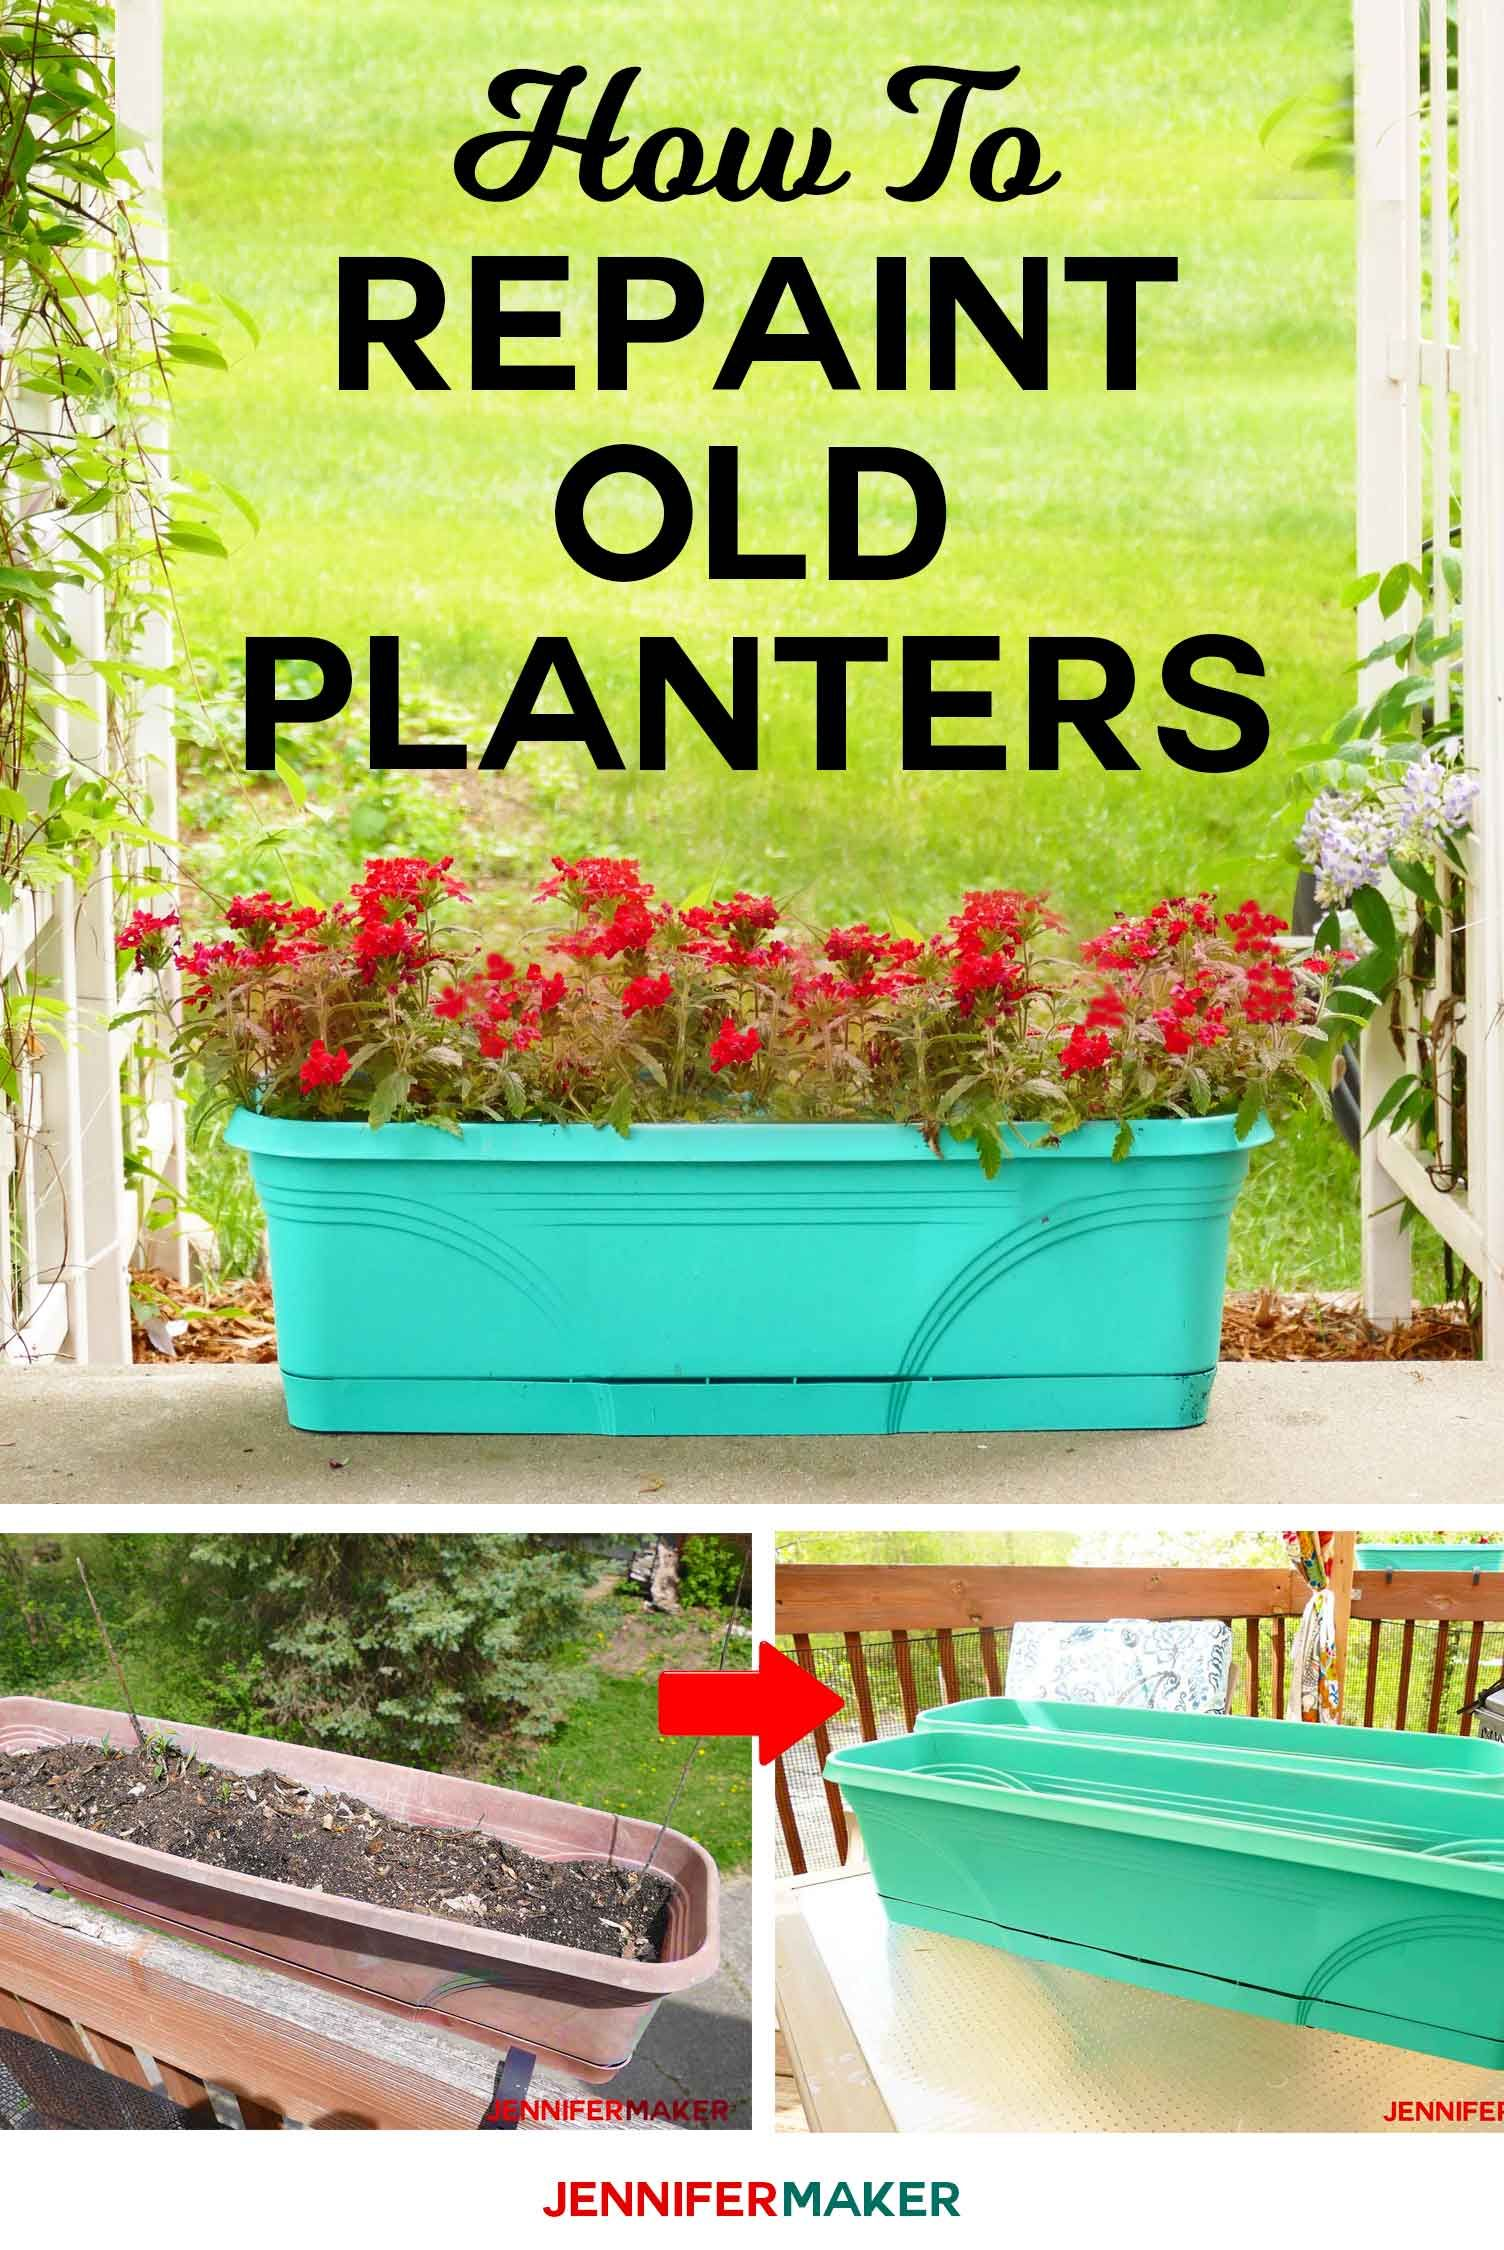 How To Spray Paint Plastic Planters Plastic Planters Painting Plastic Spray Paint Plastic